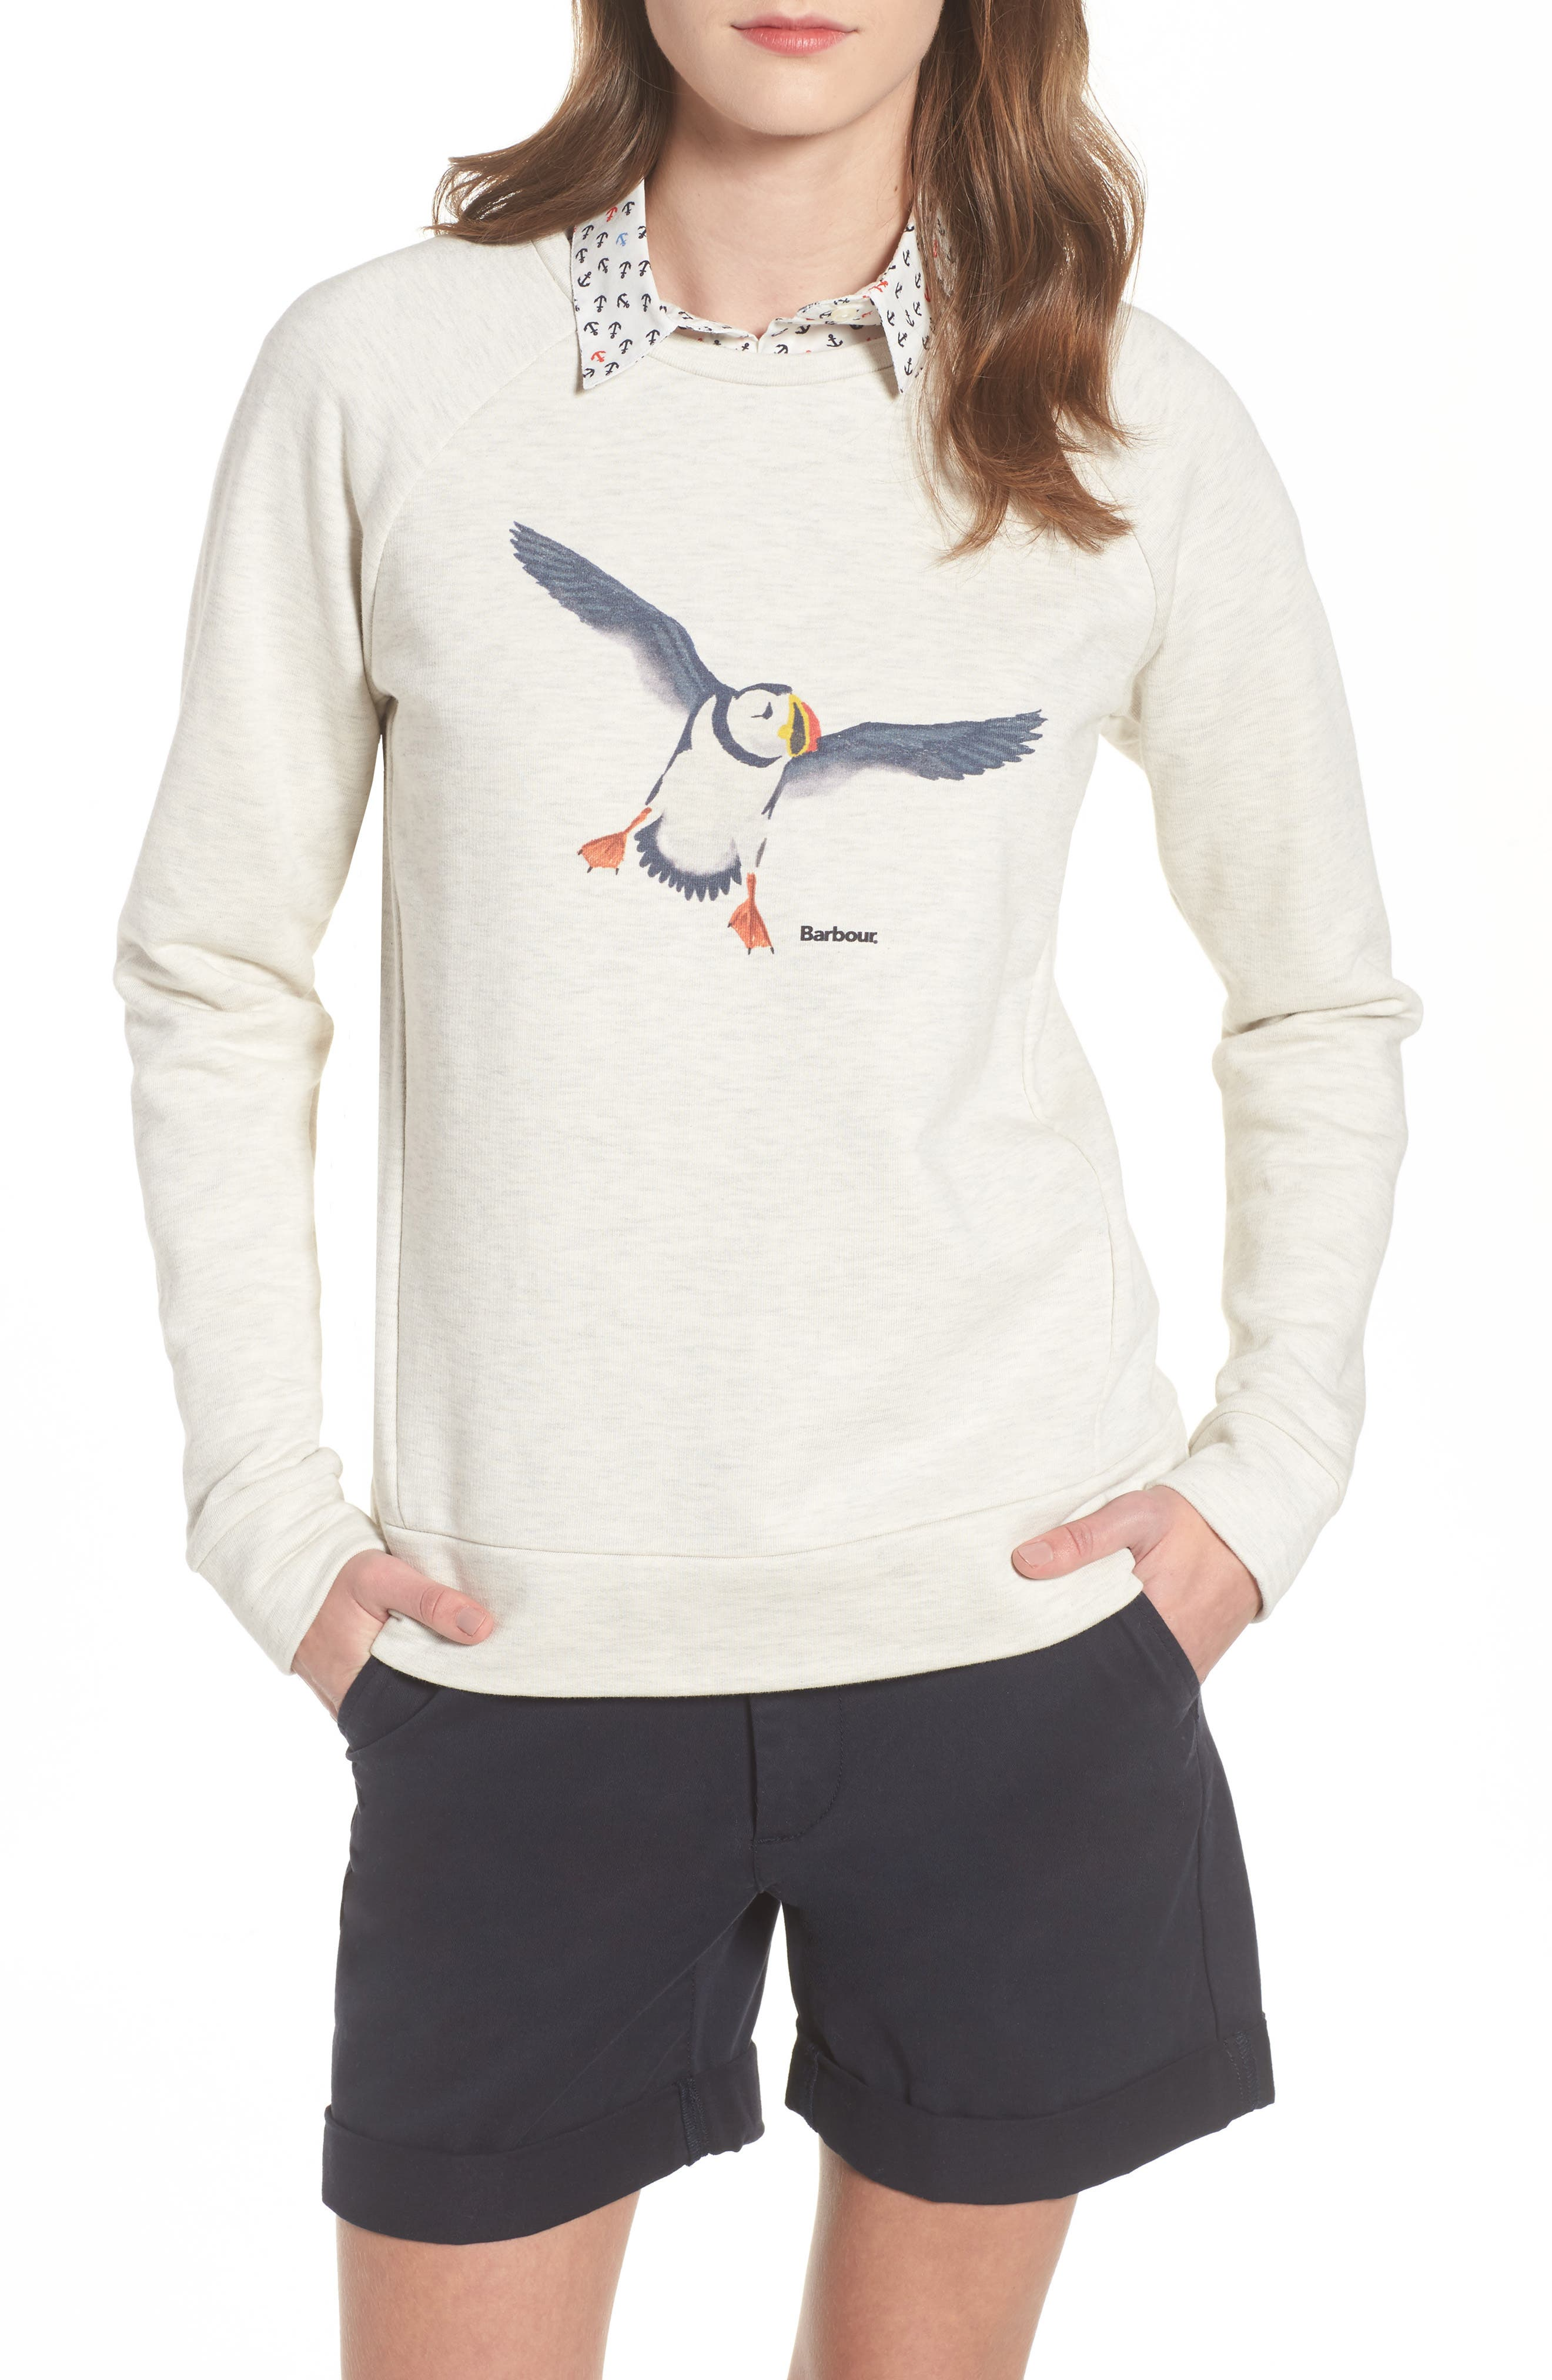 Barbour Morpeth Puffin Print Sweatshirt